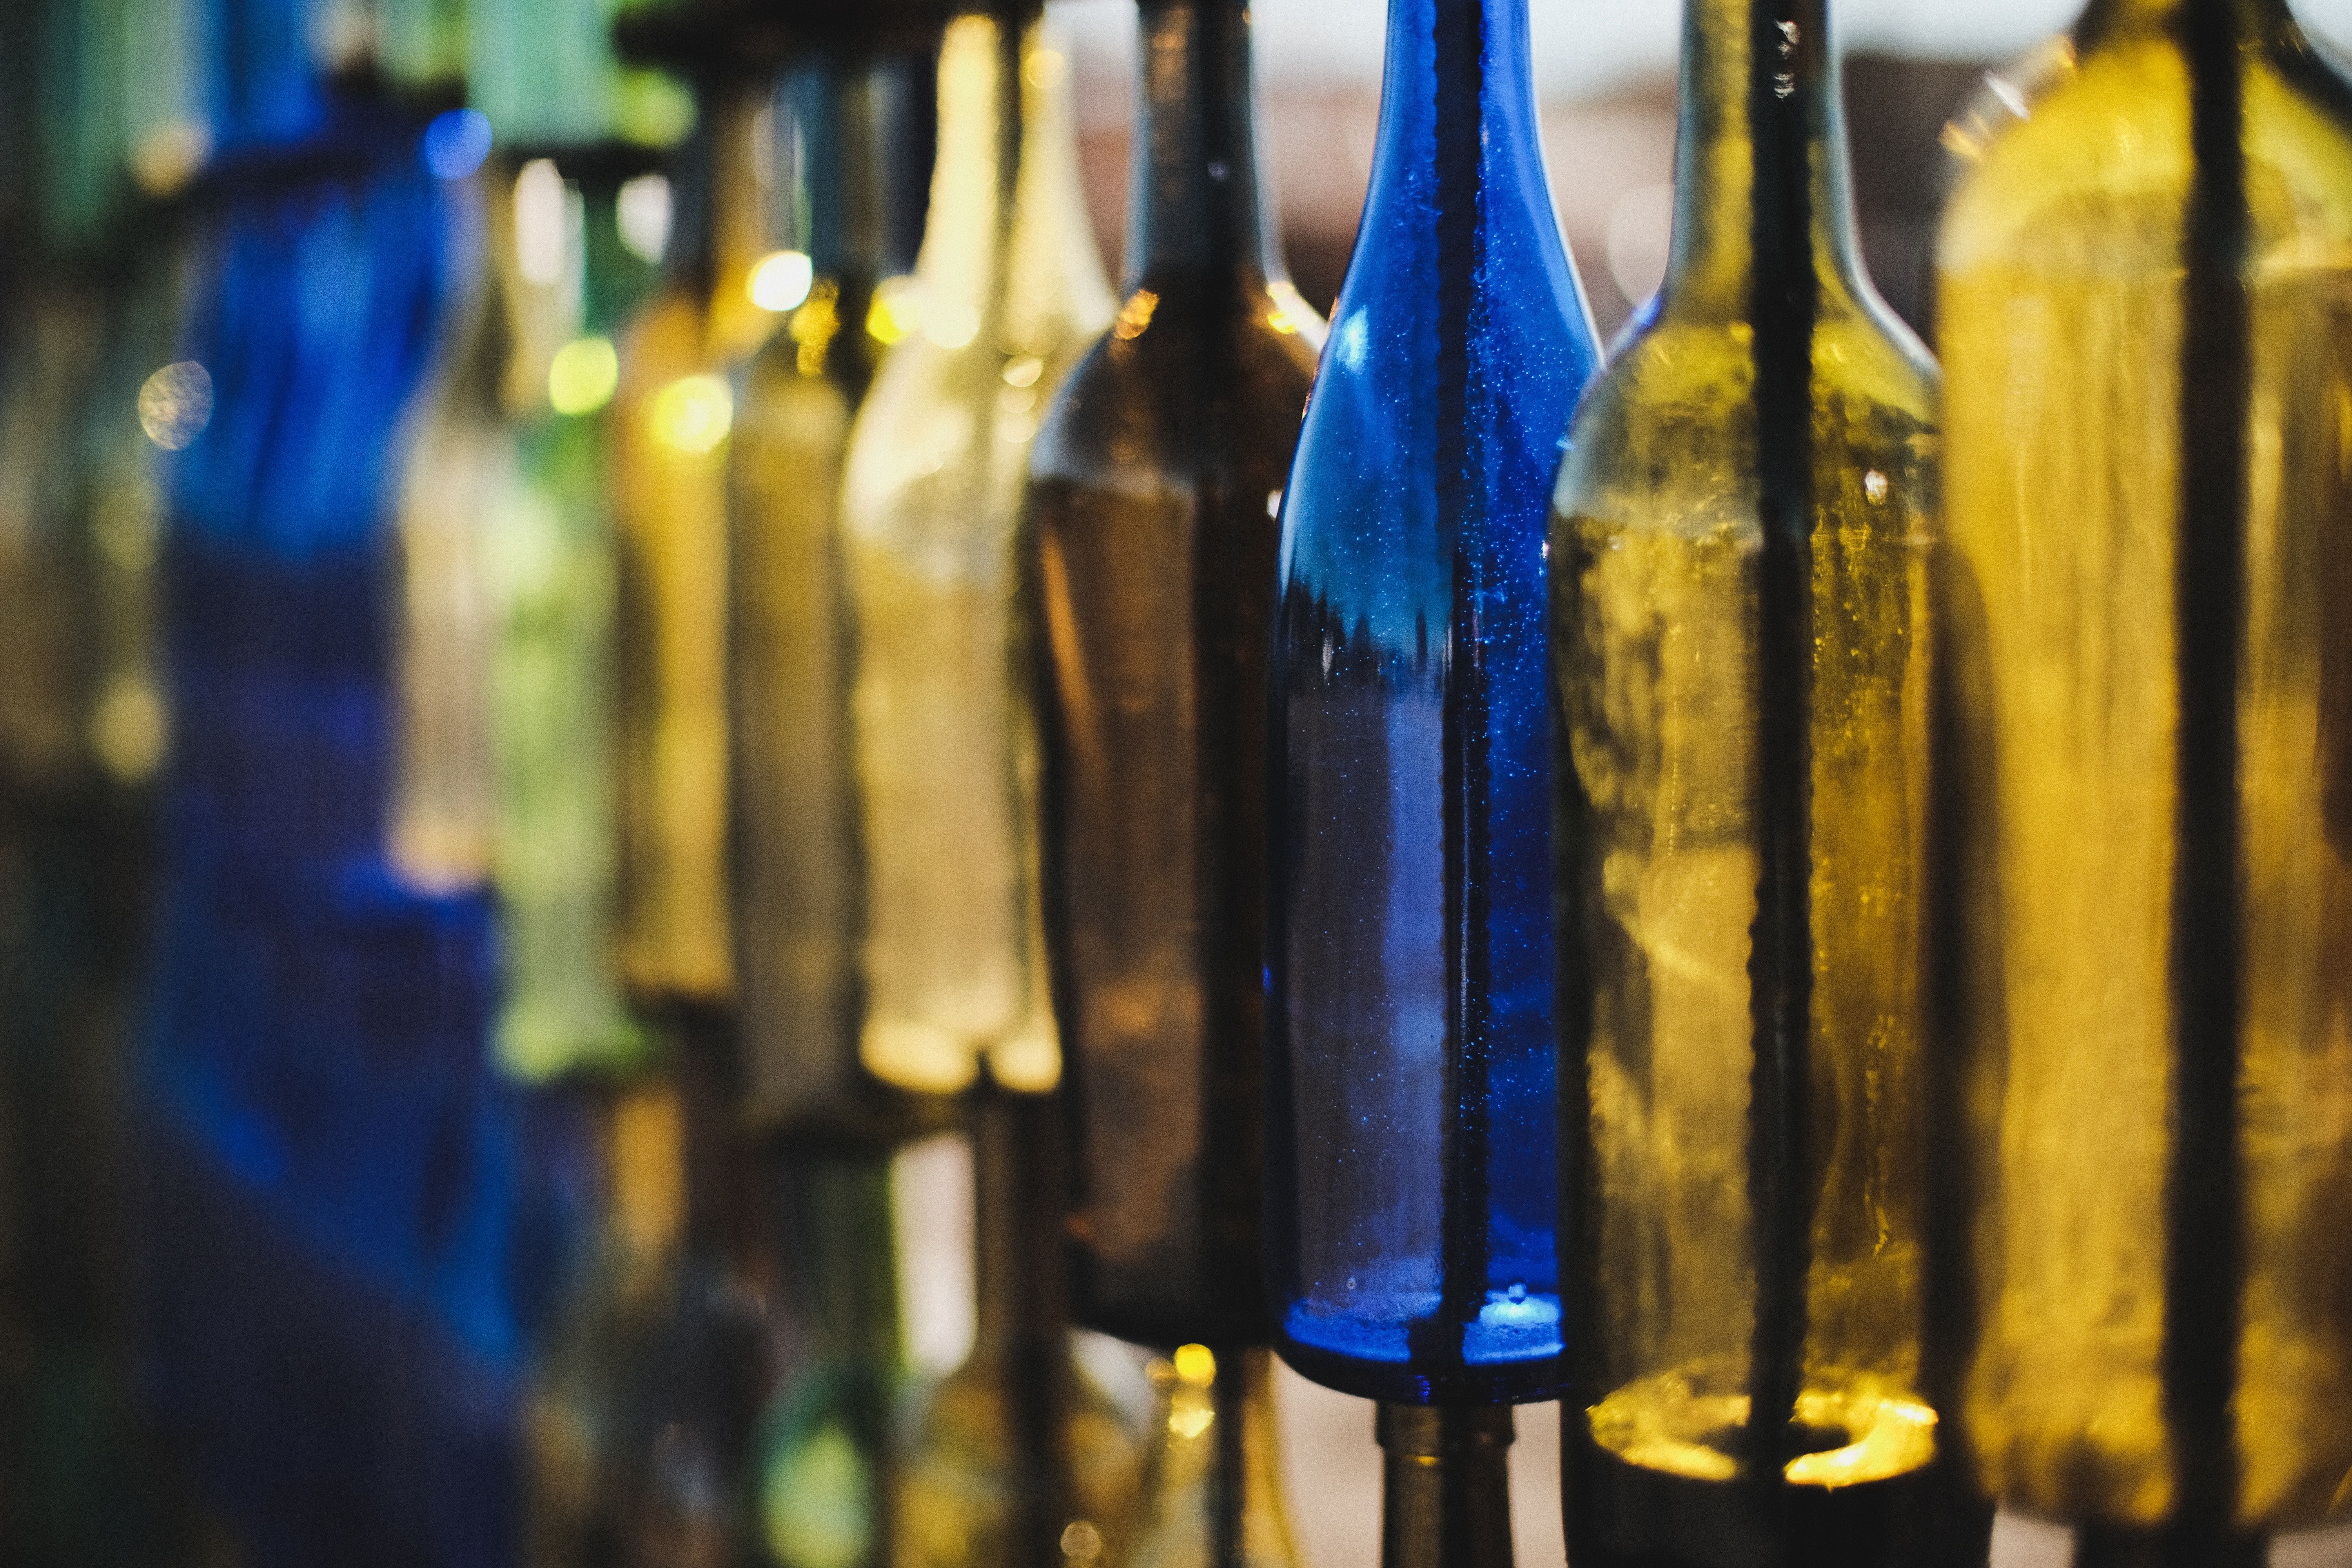 selective focus photography of glass bottles